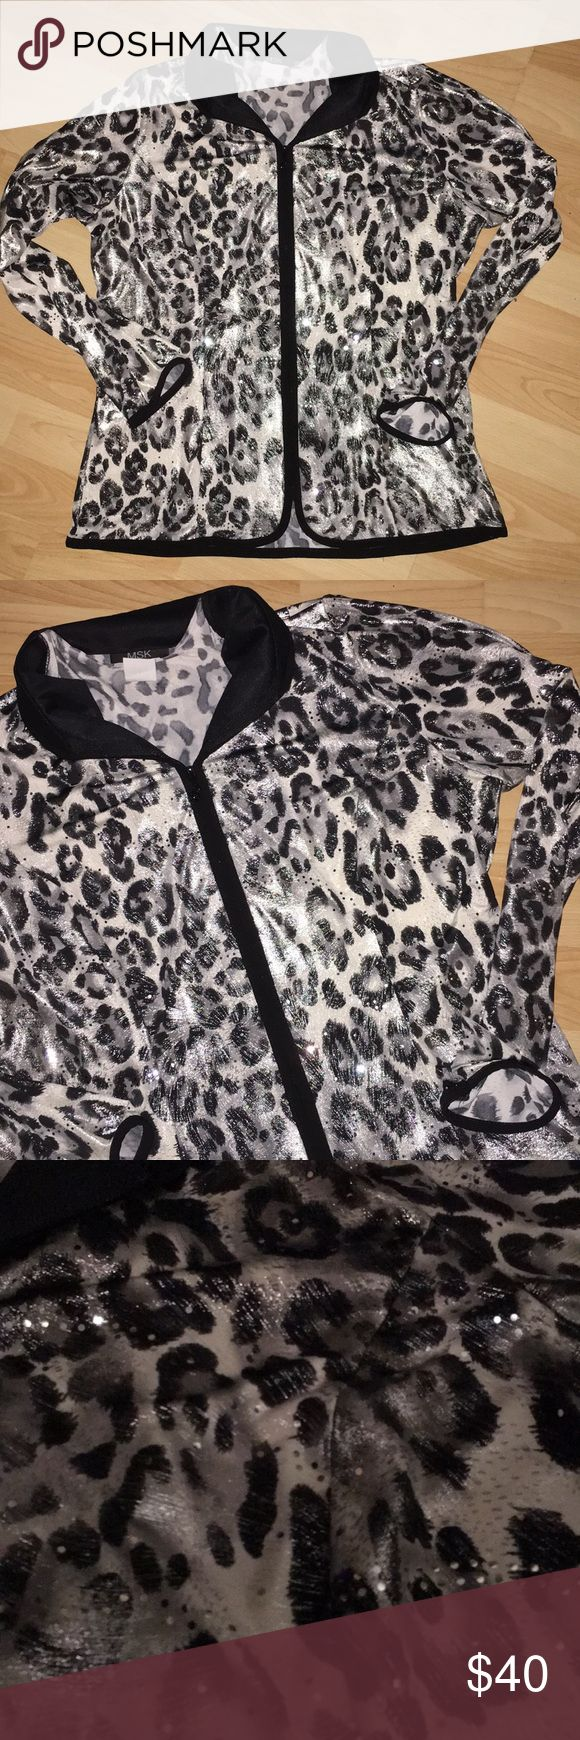 MSK Sparkle  Leopard print black and white zip up Super cute and flashy MSK Leopard print black and white zip up long sleeve- fabric is 96% polyester 4% spandex. Great condition! Size Medium MSK Tops Blouses